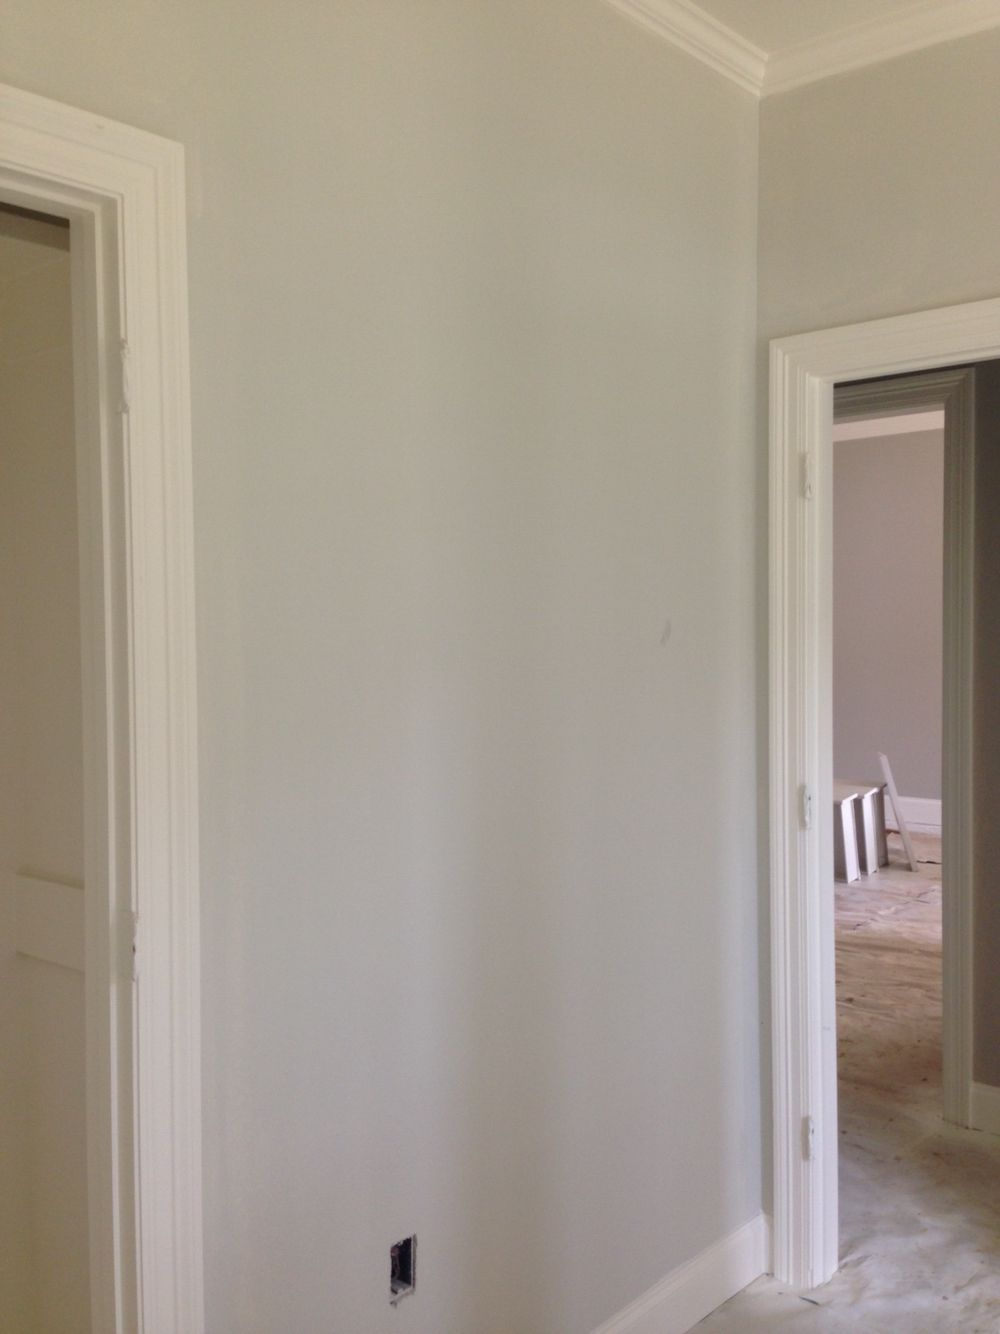 Walls Are Benjamin Moore Classic Gray Trim Is BM White Dove Paint Colors In 2019 Paint